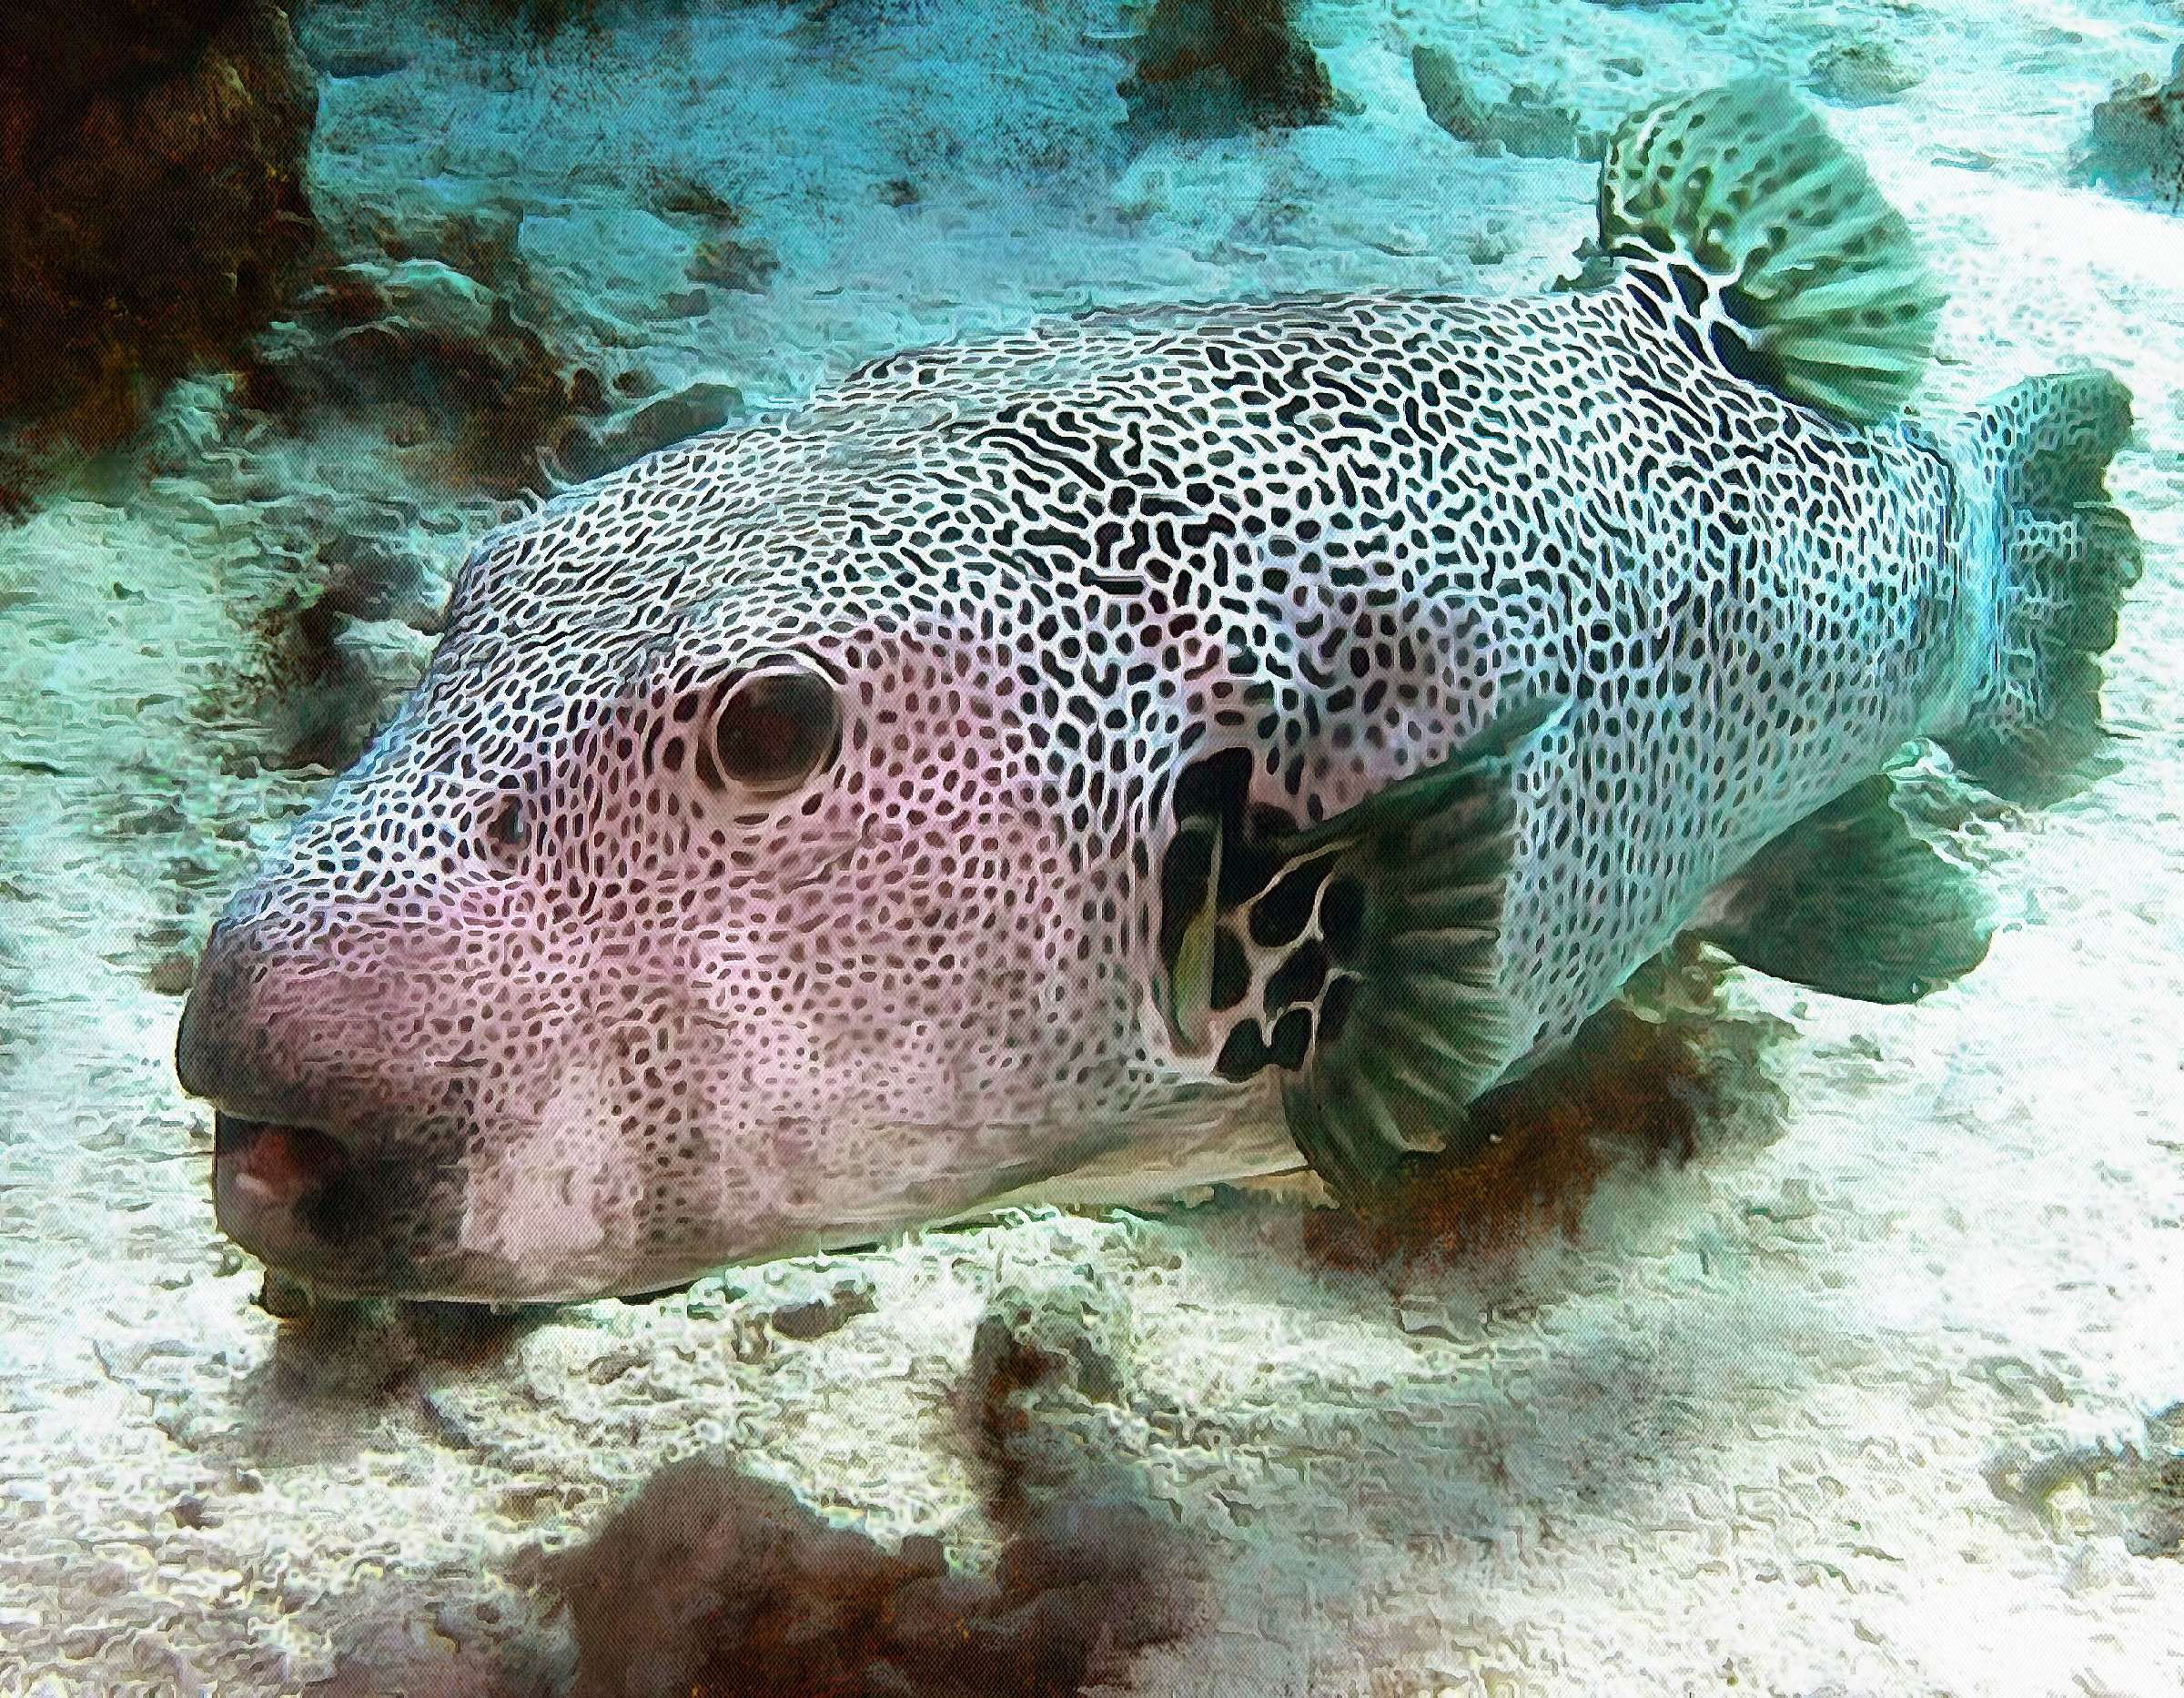 Puffer fish facts interesting facts about puffer fish for Puffer fish adaptations